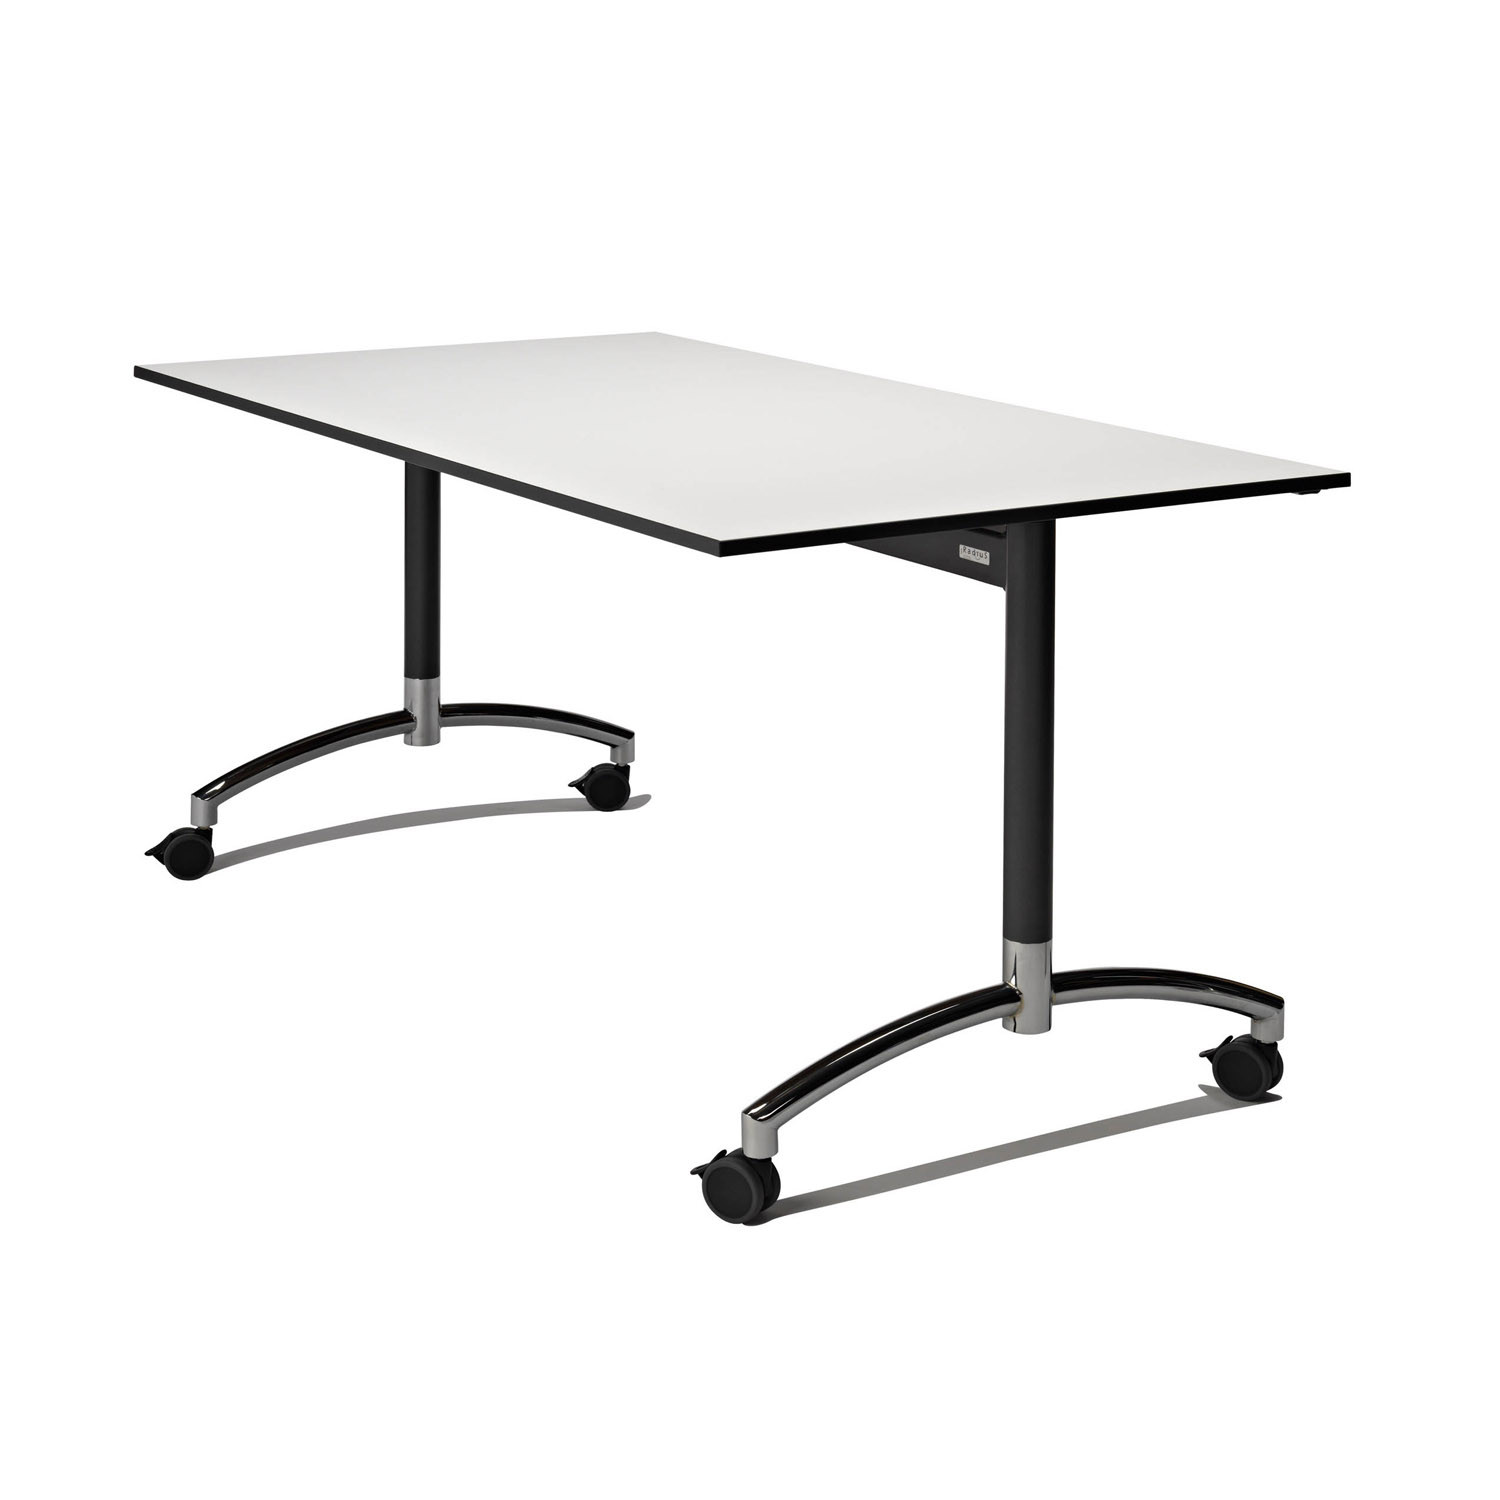 foldable office table. Sharp Folding Table Foldable Office E